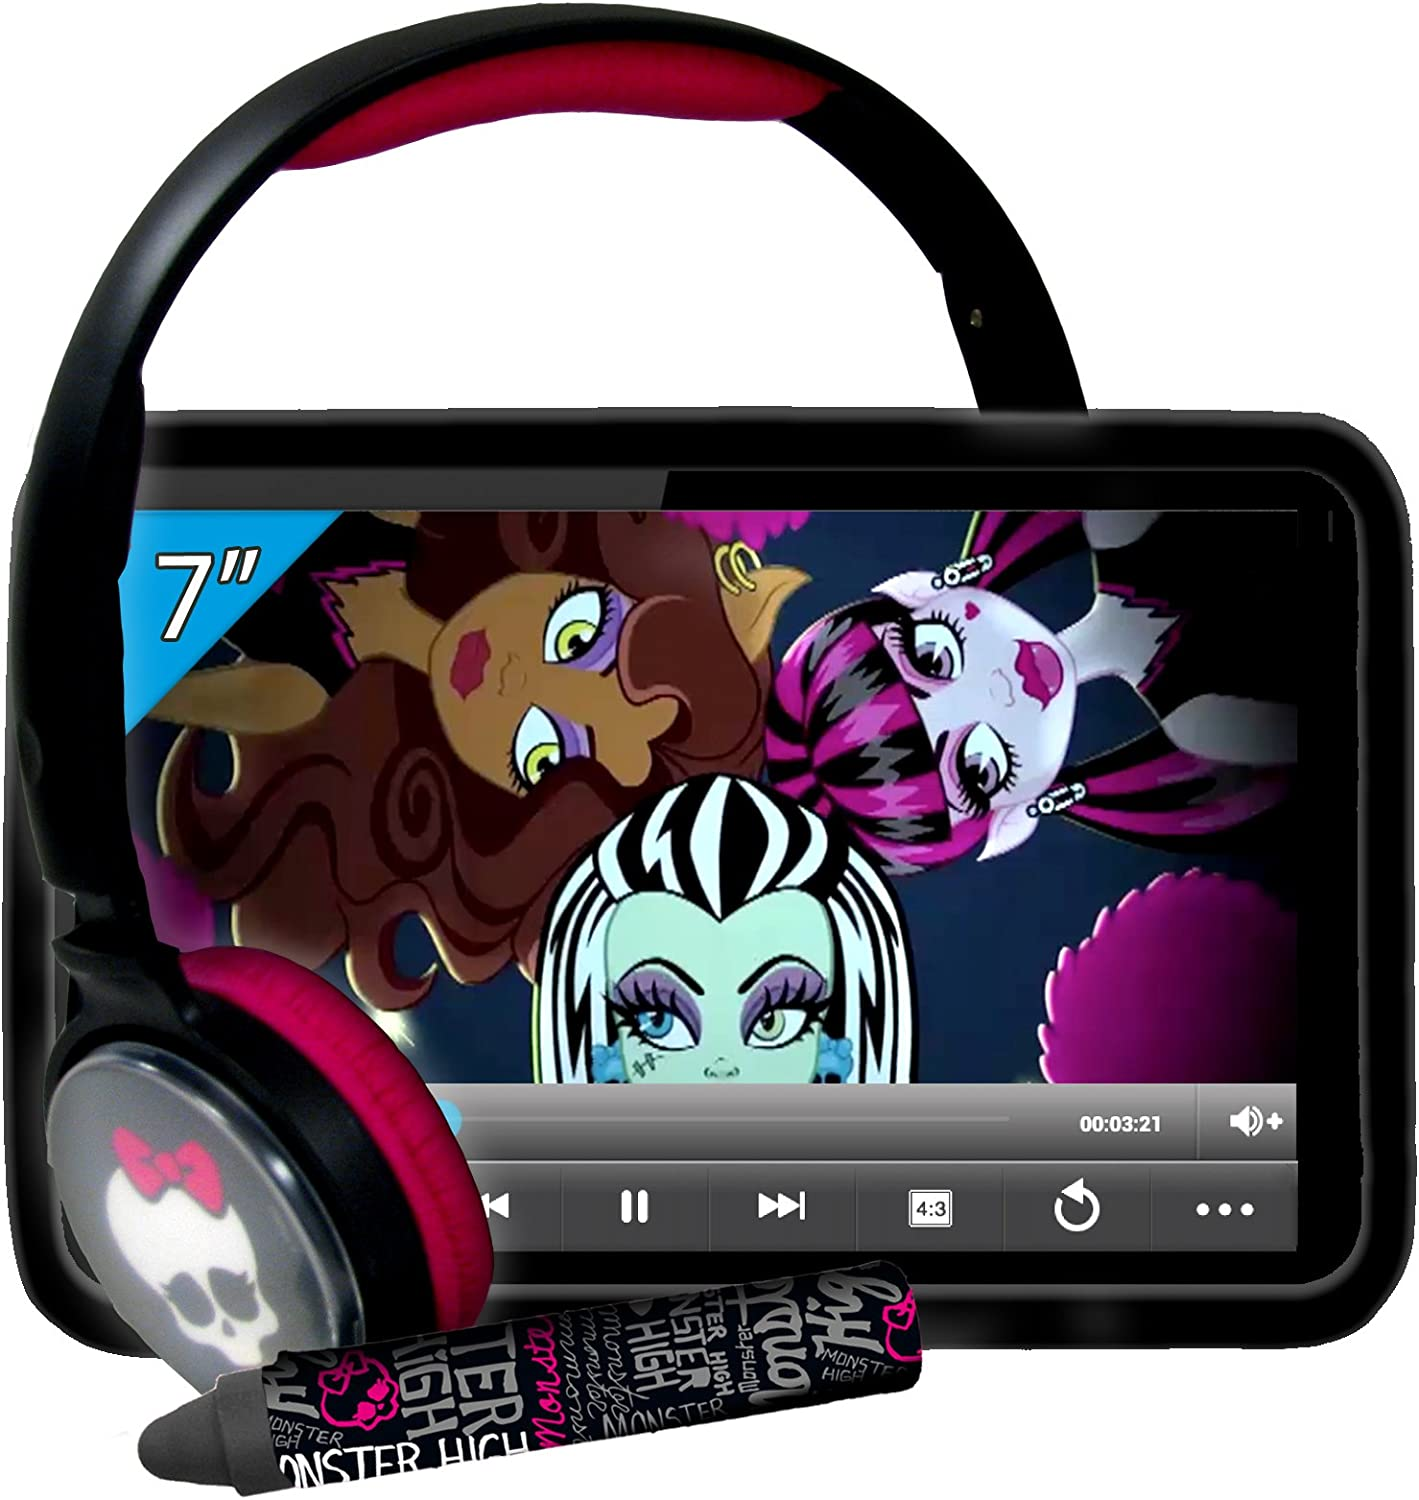 Ingo Monster High - Super Pack 7 (Incluye Tablet de 7